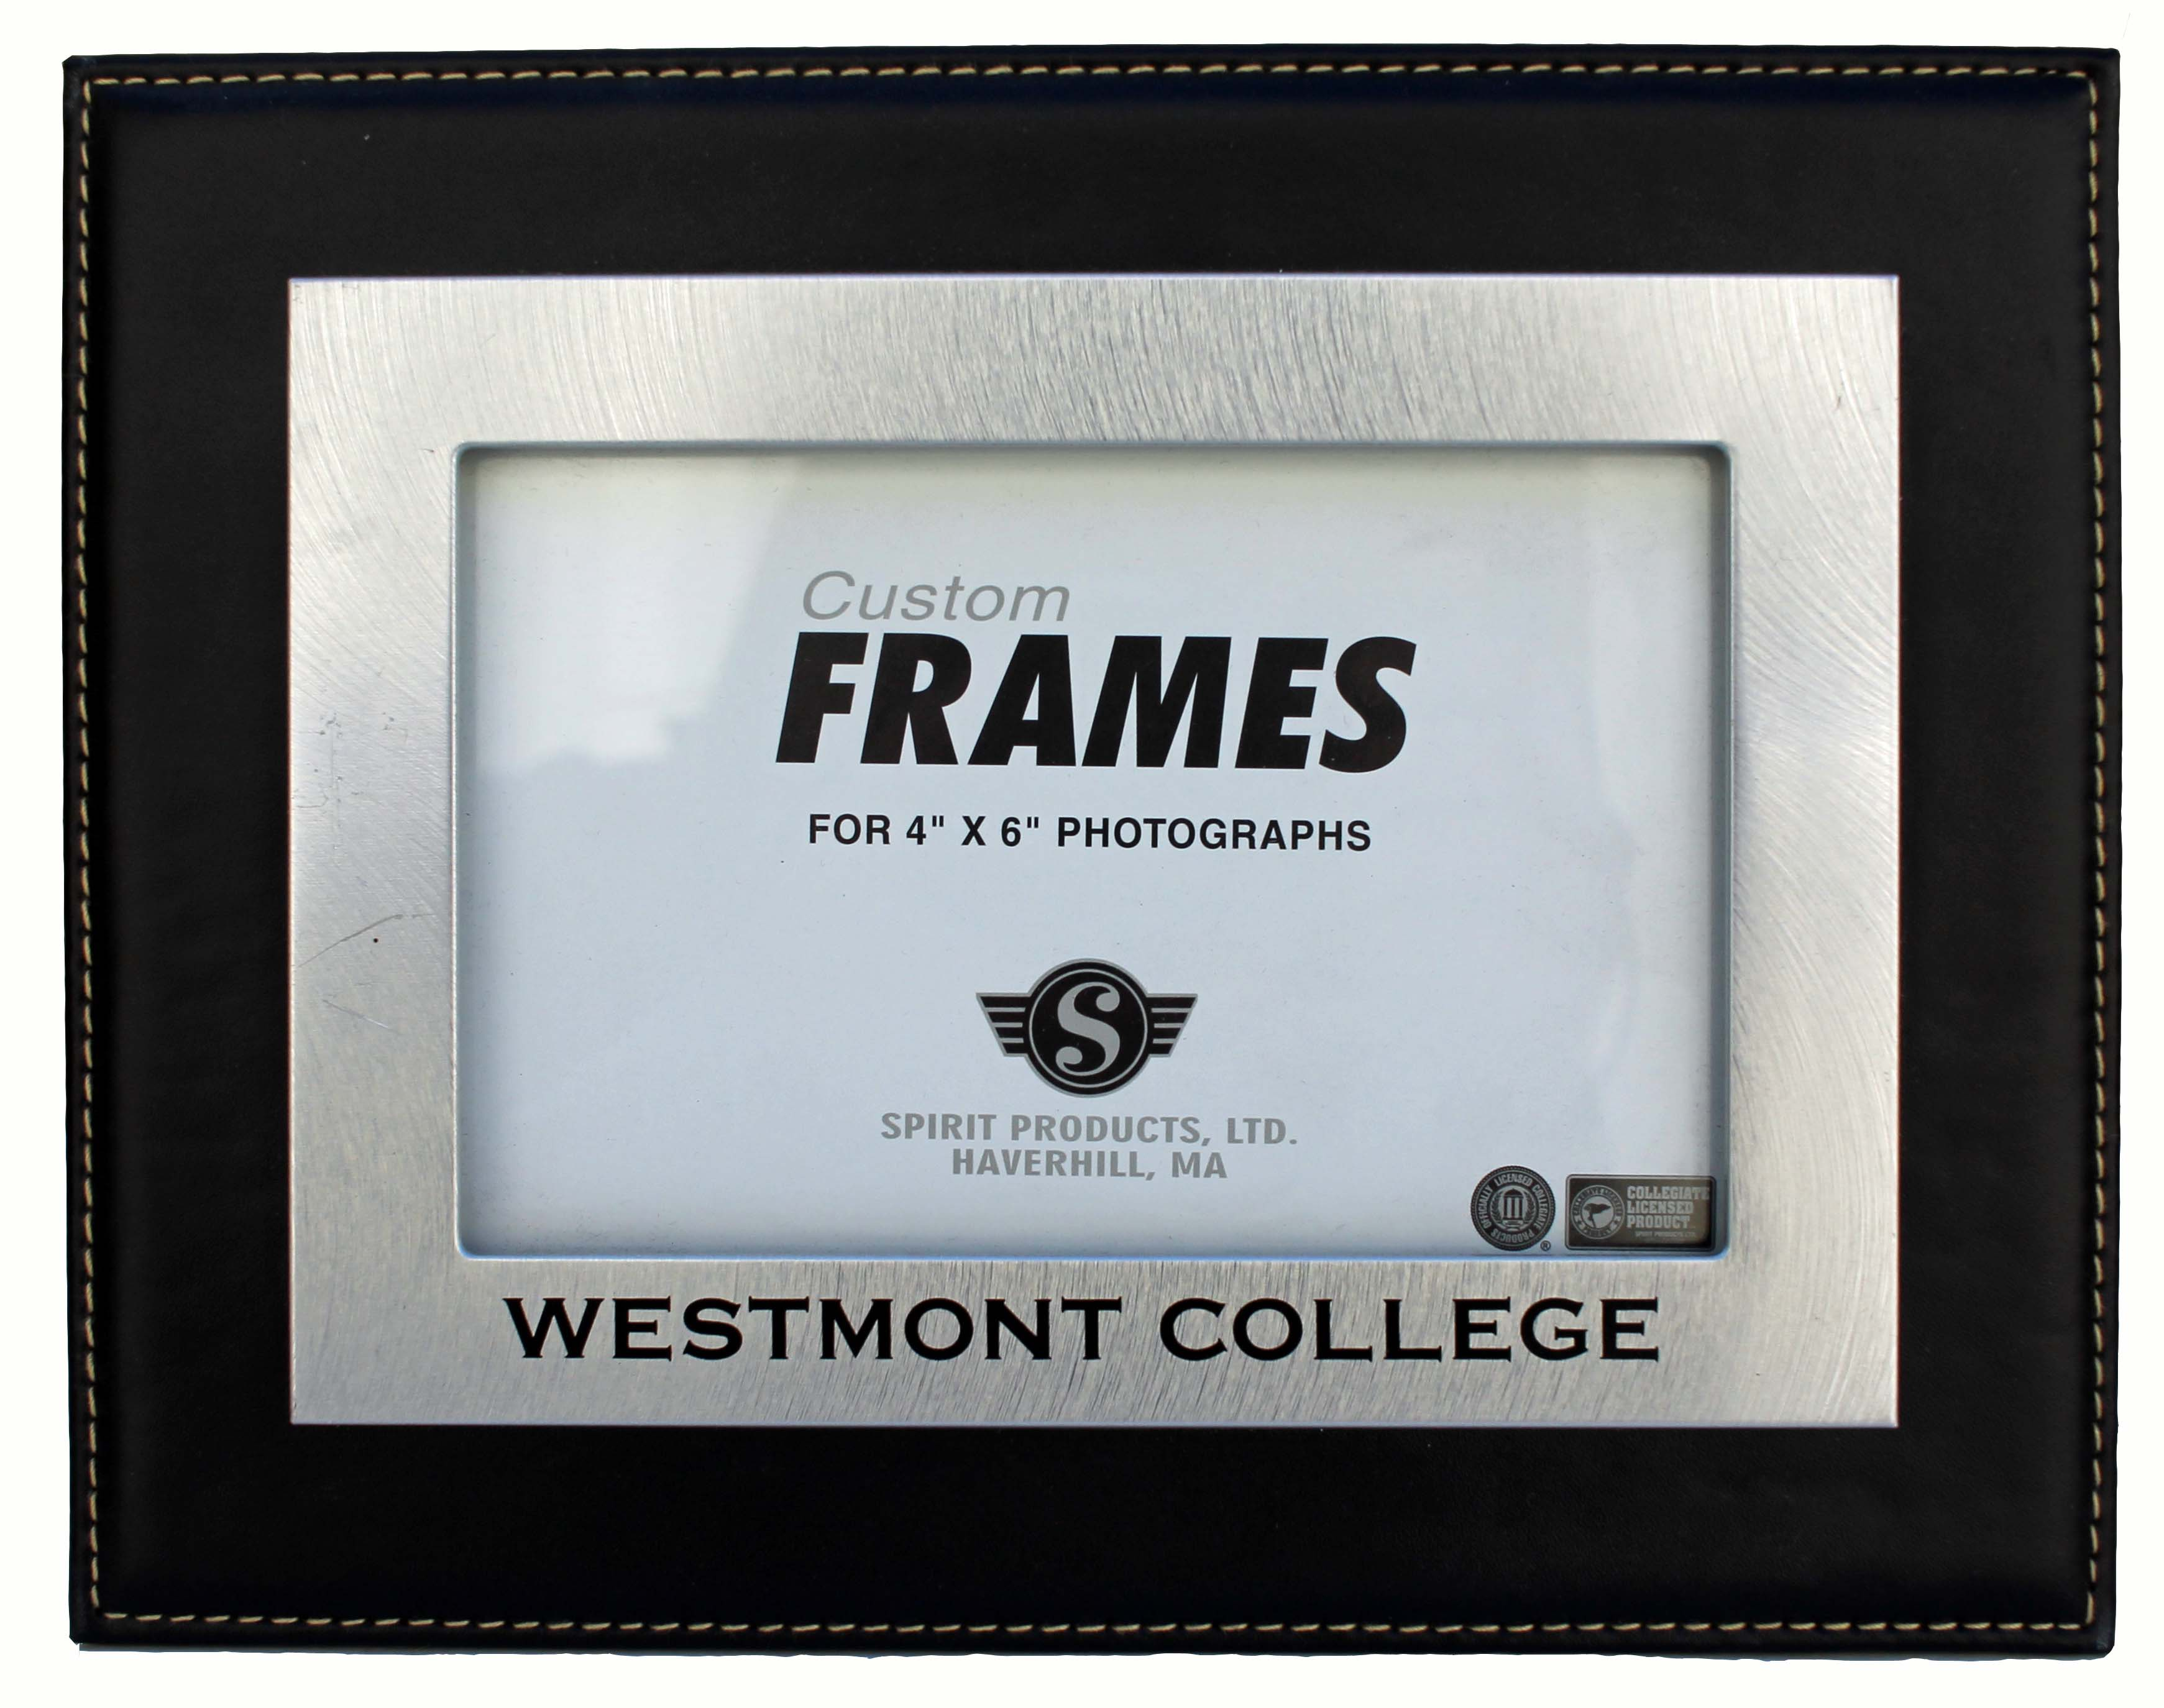 Image for the Westmont College Silver and Leather Picture Frame product